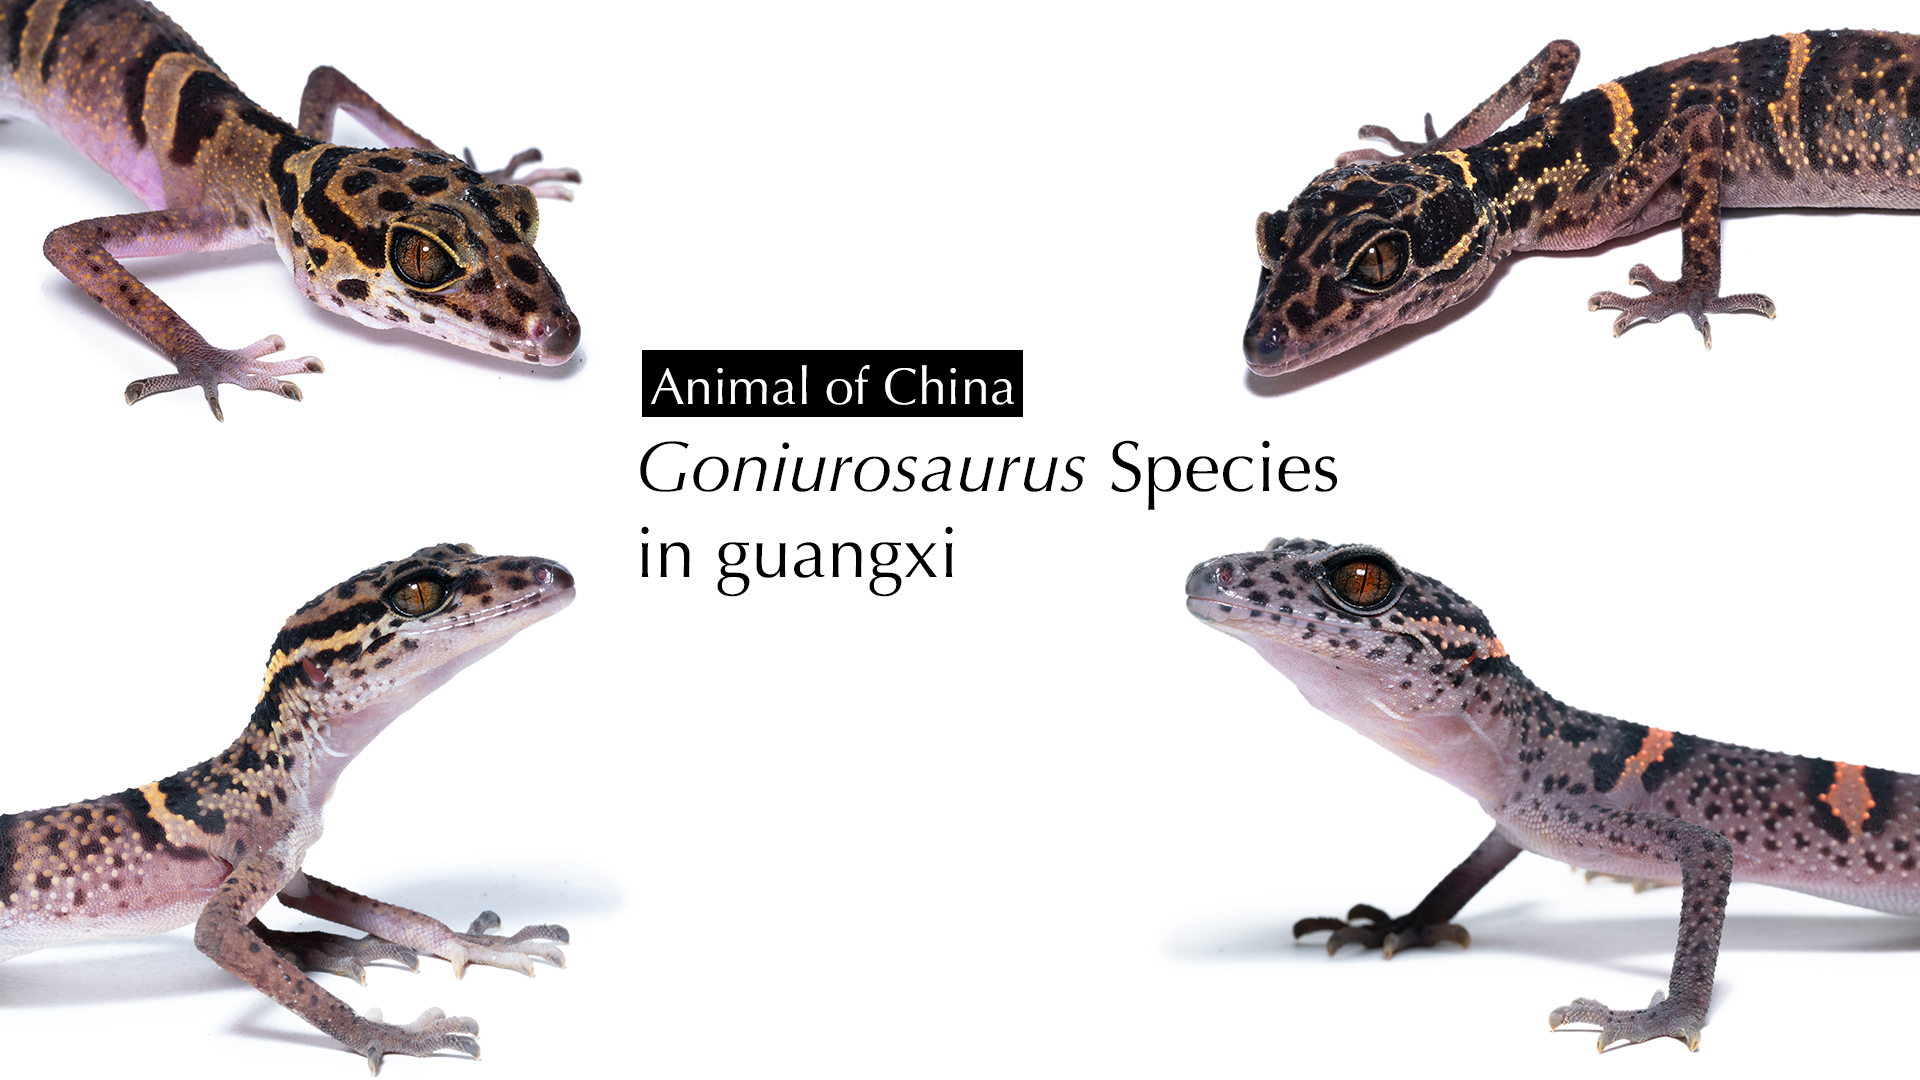 Goniurosaurus Species in guangxi.jpg